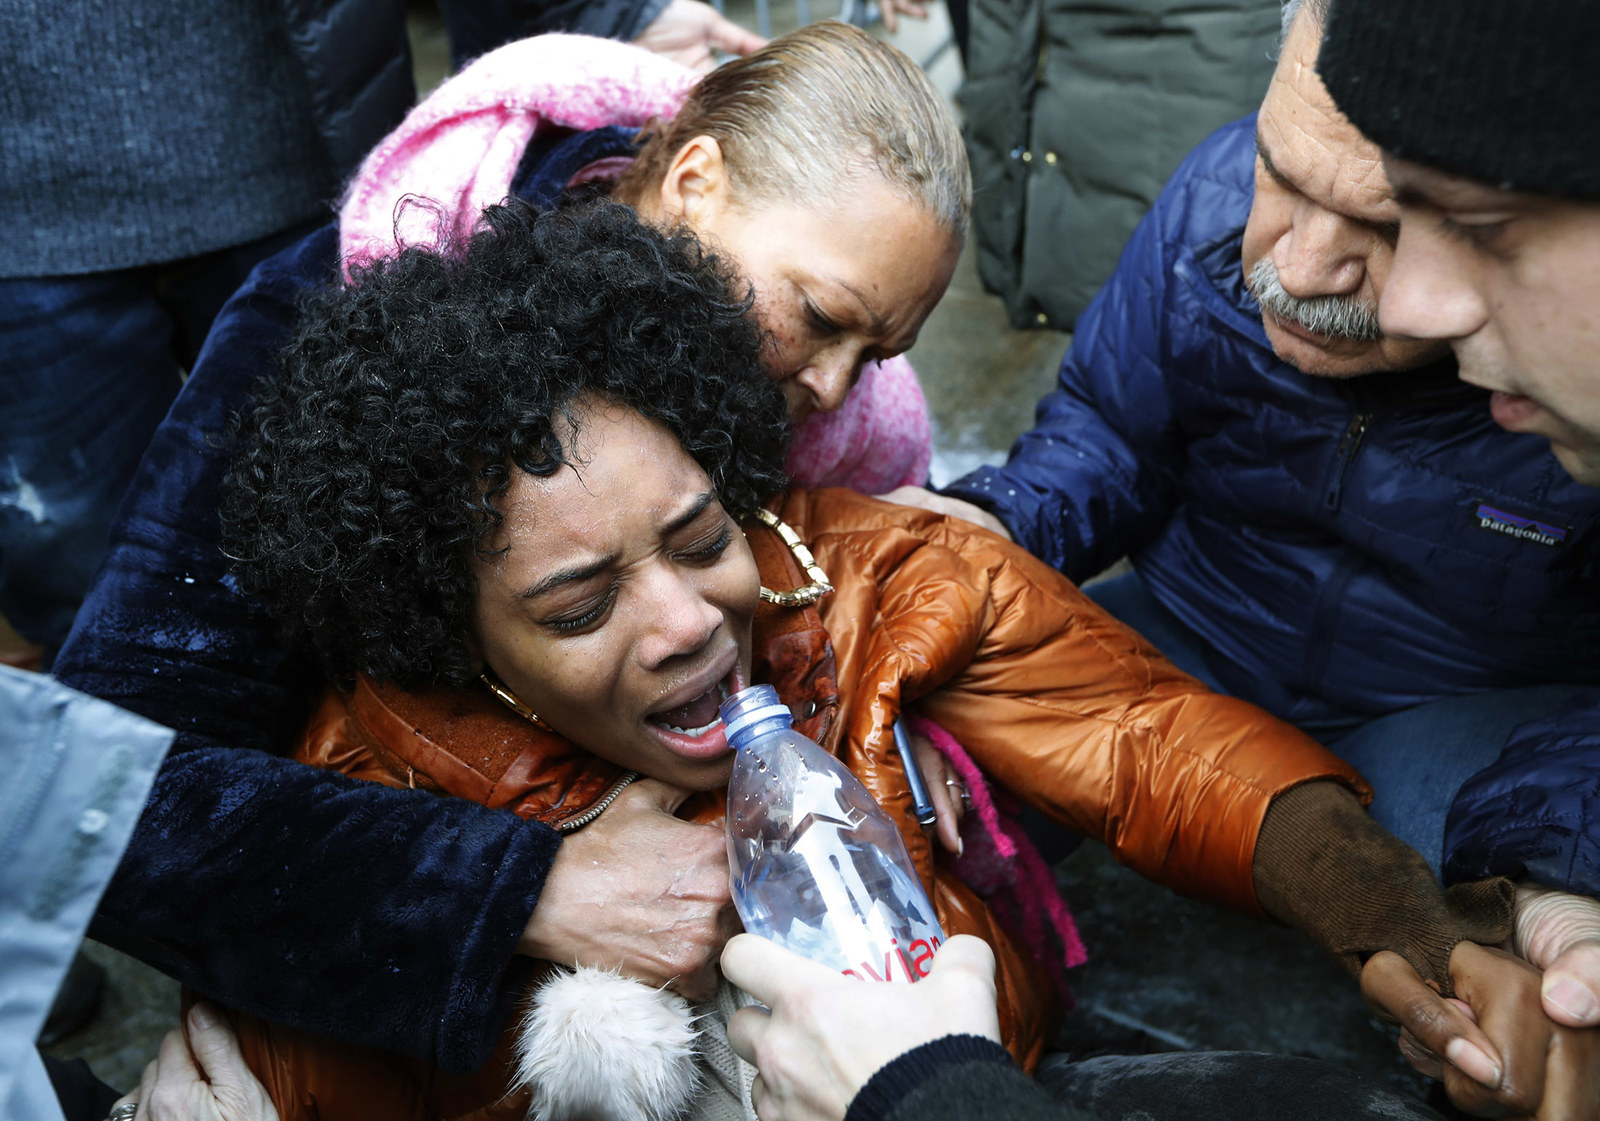 Yandy Smith is helped by others after being pepper sprayed on on Feb. 3, after she and others stormed the main entrance to the Metropolitan Detention Center in Brooklyn, New York, a federal prison where prisoners have gone without heat, hot water, and flushing toilets due to an electrical outage.